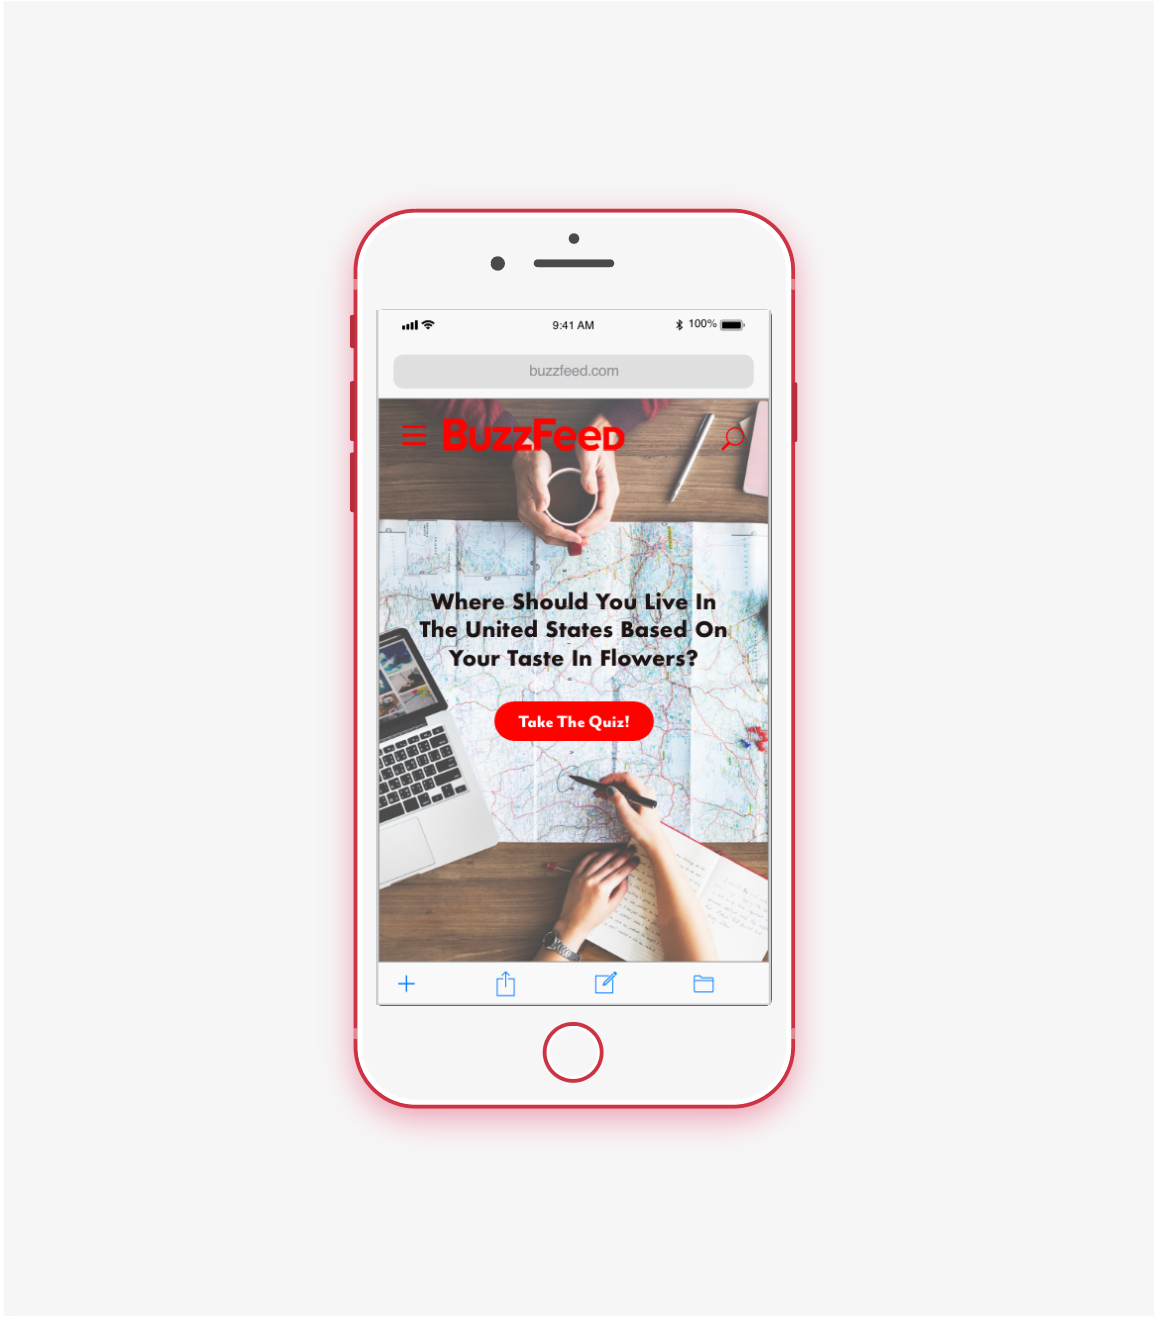 Buzzfeed Mobile Quiz Redesign On Behance A quiz by starline gamez. buzzfeed mobile quiz redesign on behance